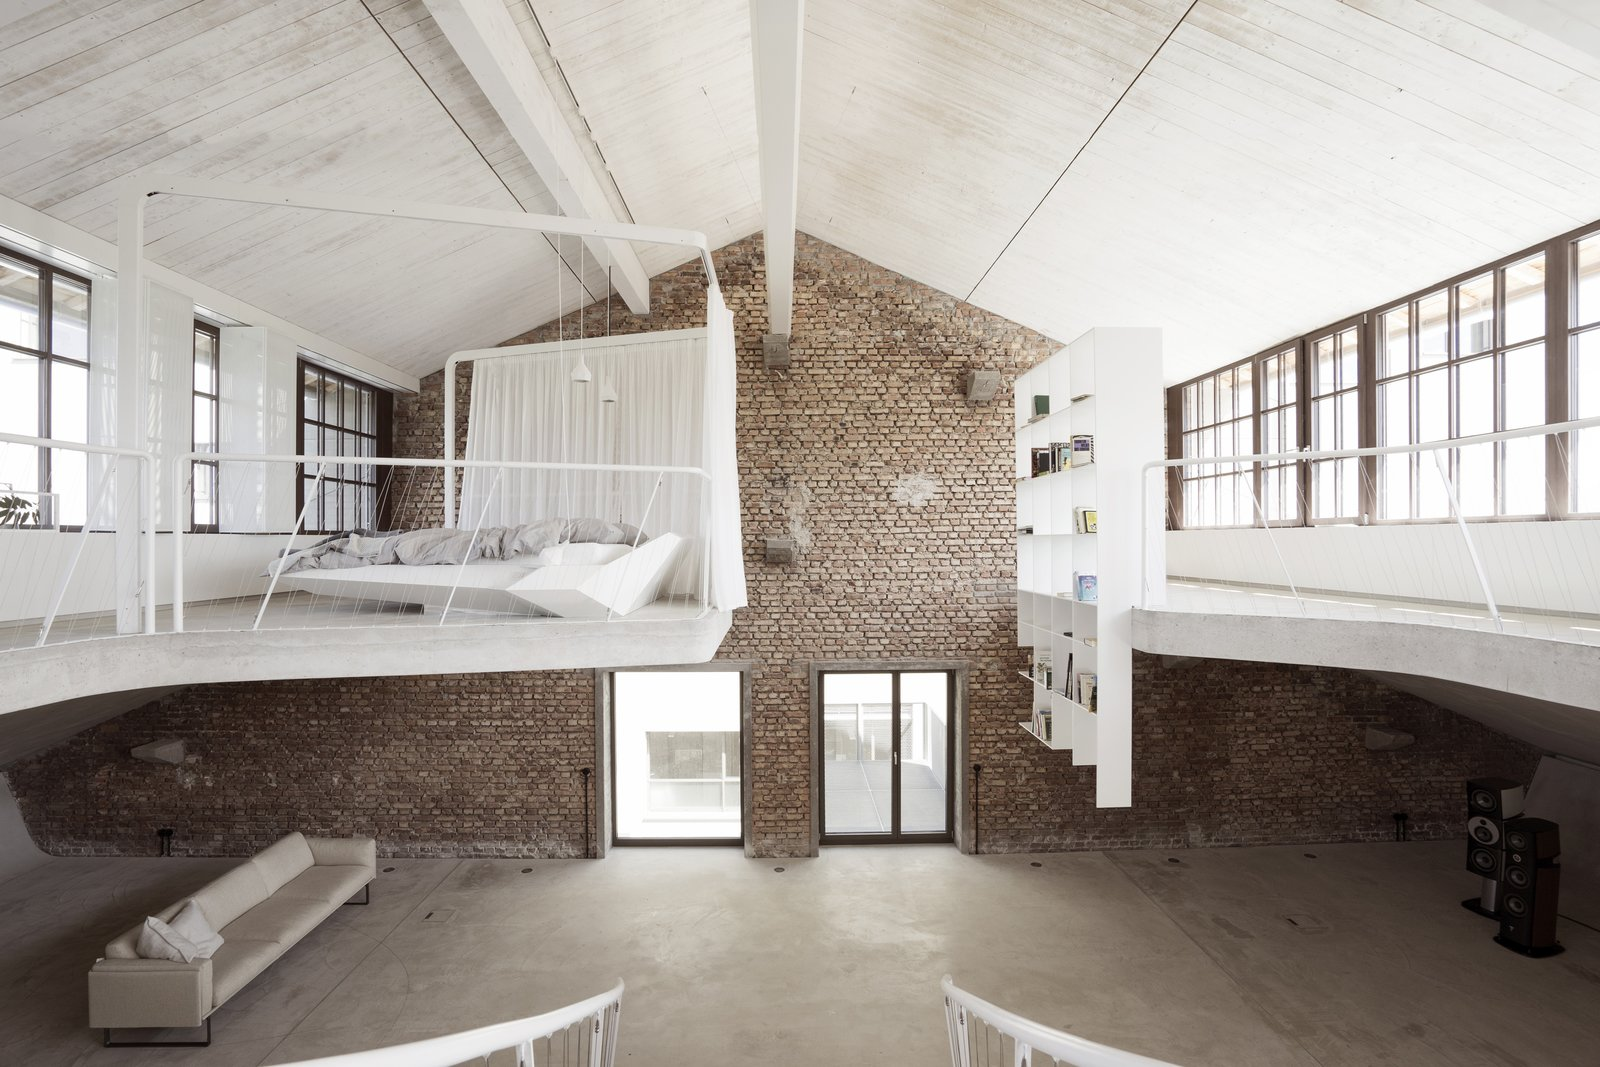 Loft Panzerhalle living area and bedroom